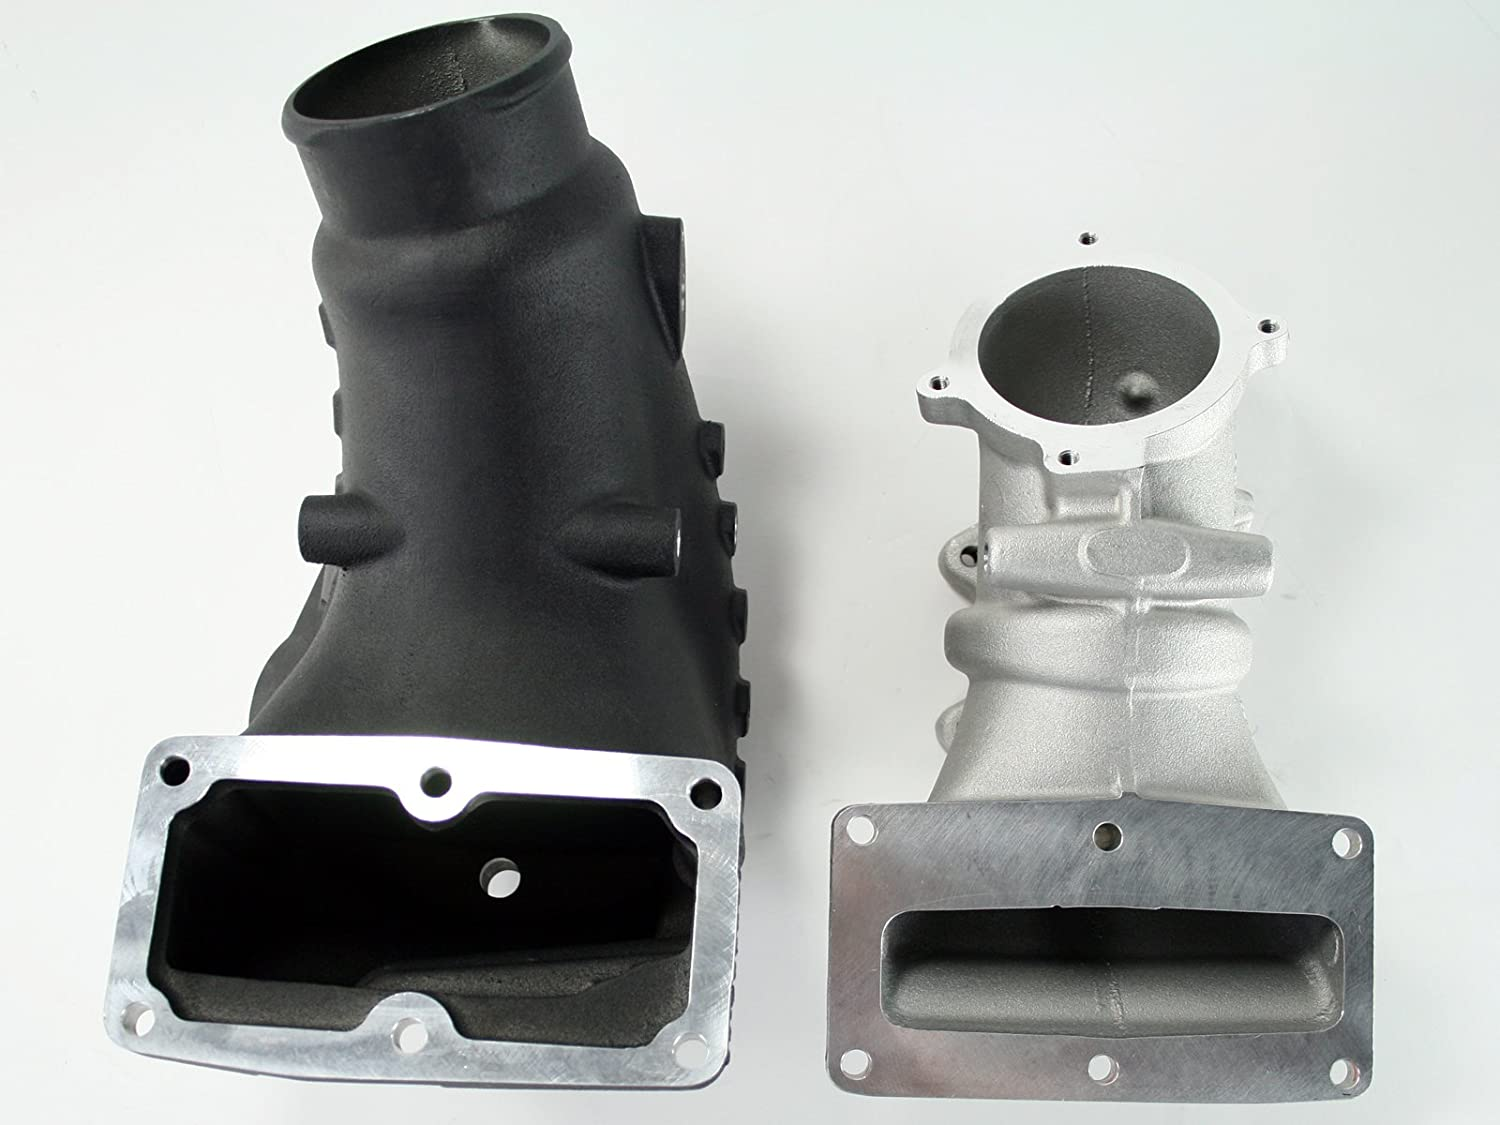 aFe 46-10072 BladeRunner Black Intake Manifold with Race MDV Technology for Dodge Diesel Truck L6-6.7L